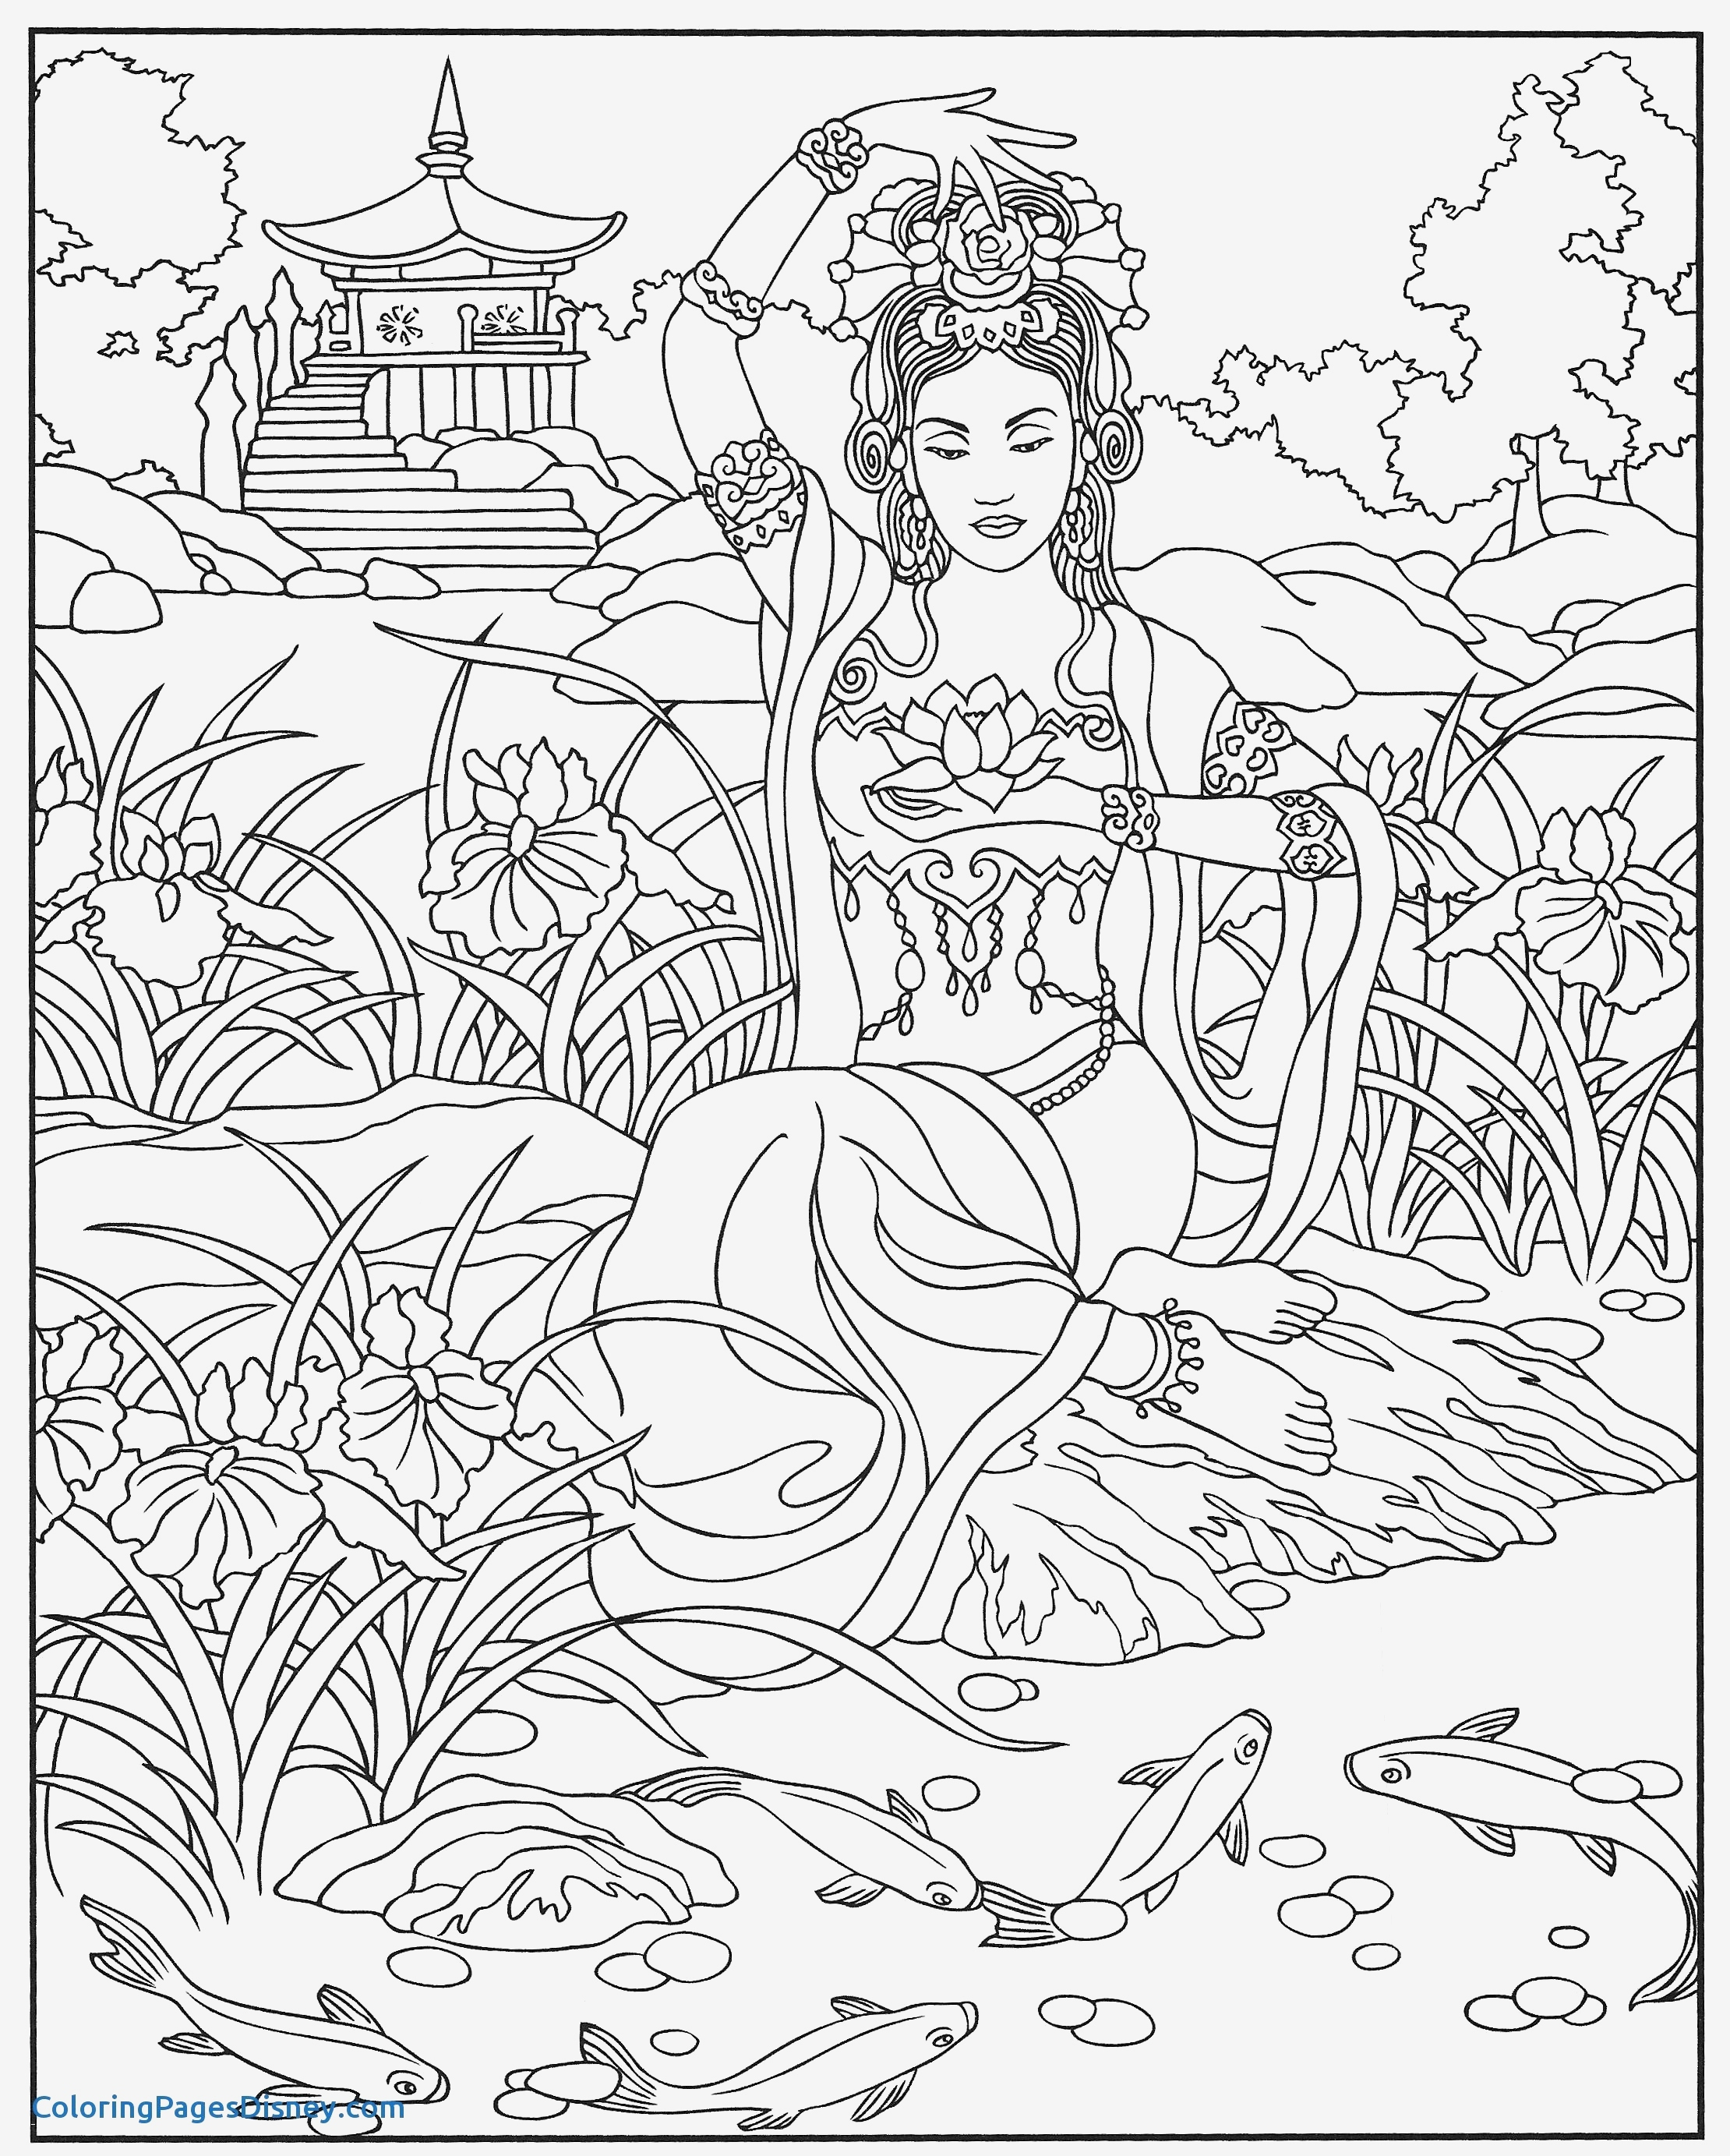 free lion guard coloring pages Collection-Belle Coloring Pages Easy and Fun Lion King Lion Unique Princess Coloring Pages Belle Printable 11-j